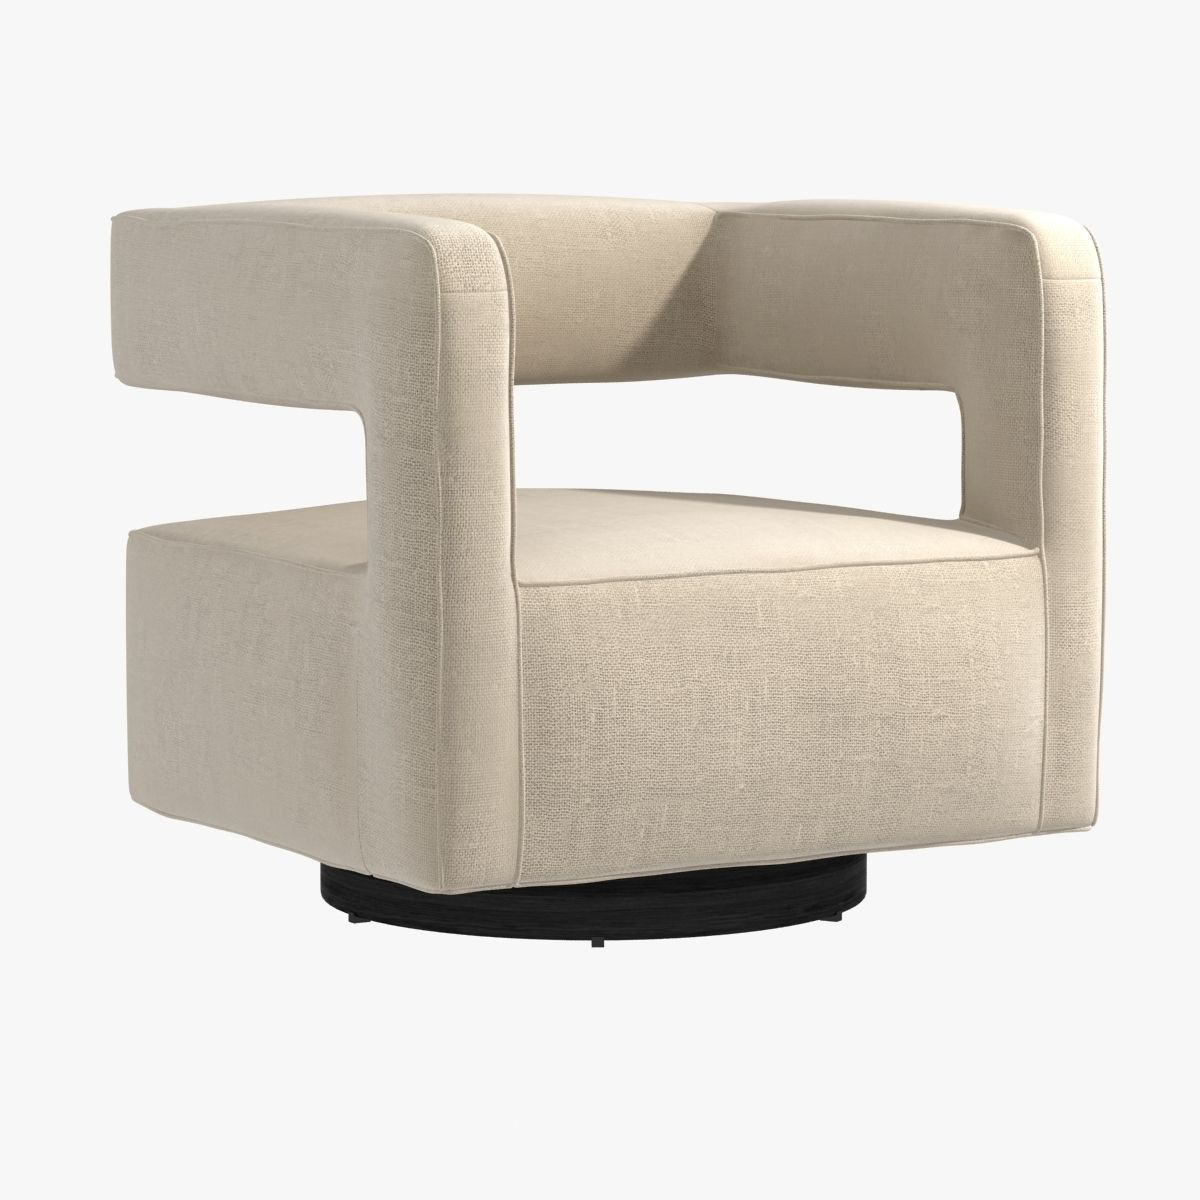 Nico Return Swivel Chairmitchell Gold Bob Williams 3D Model Max For Mitchell Arm Sofa Chairs (View 23 of 25)